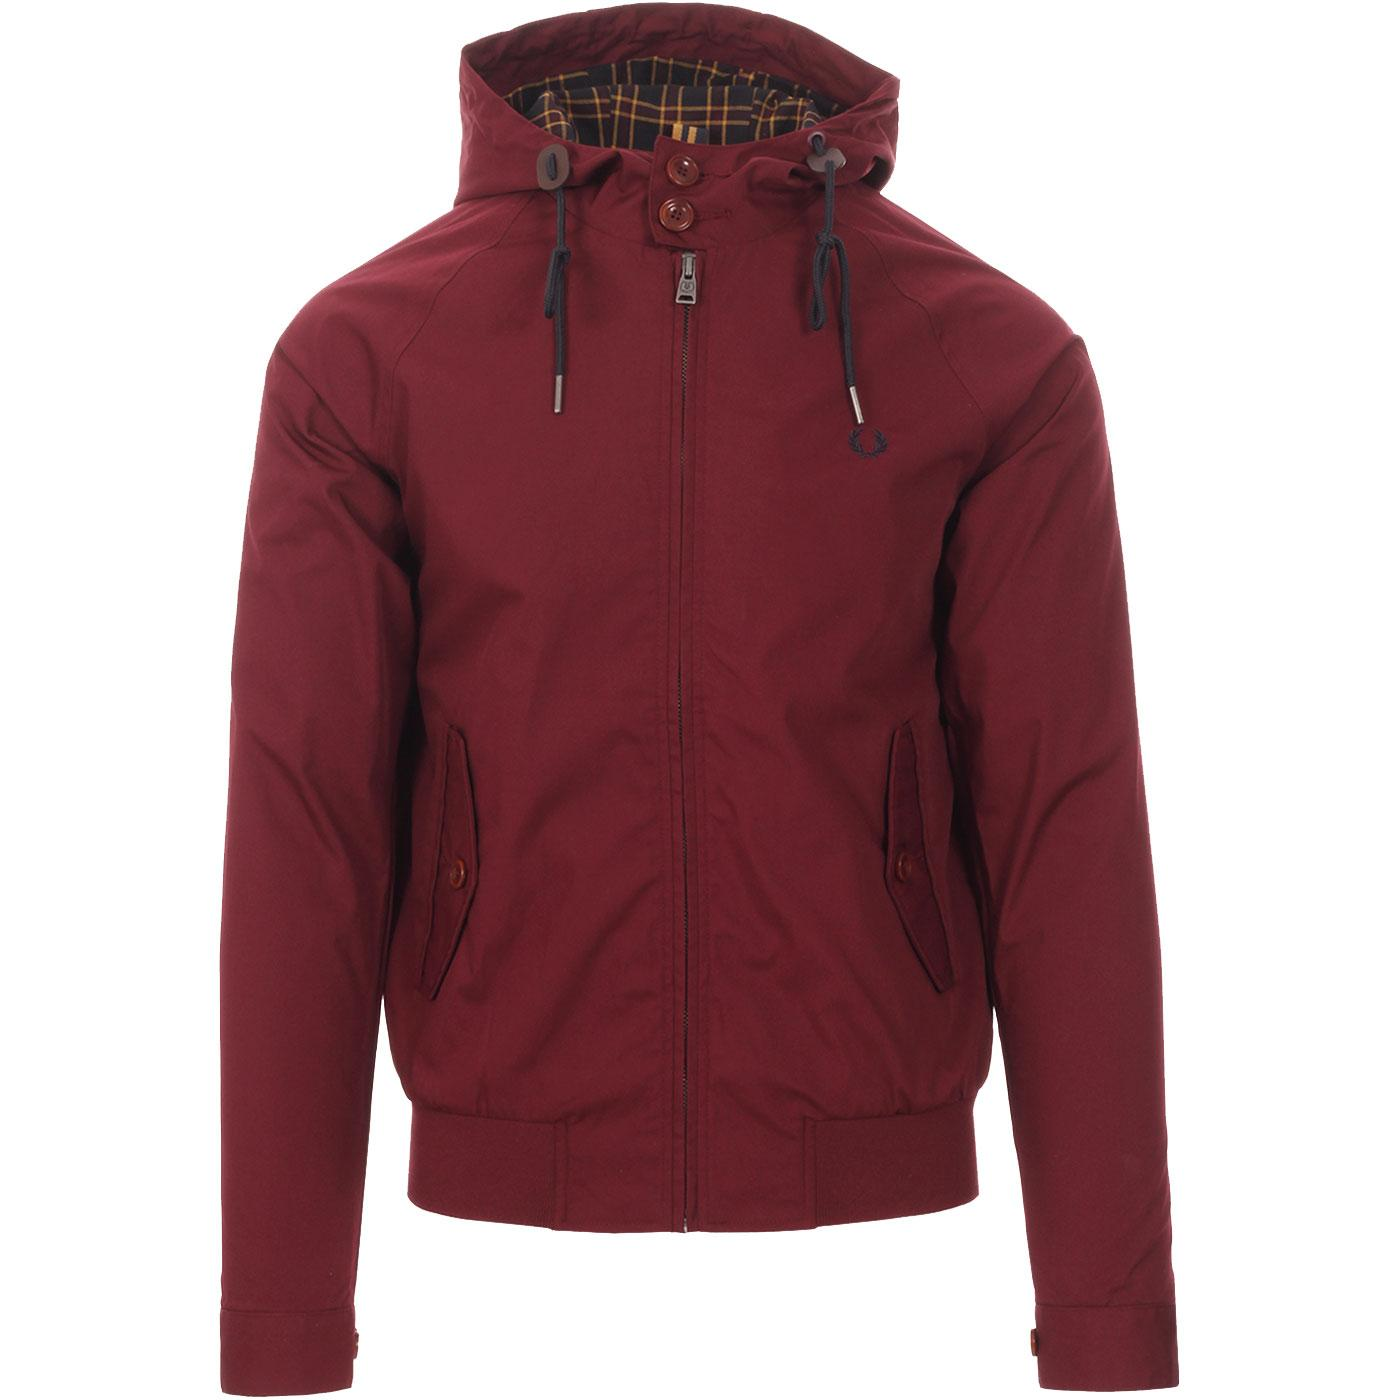 Woodford FRED PERRY Mod Hooded Harrington Jacket